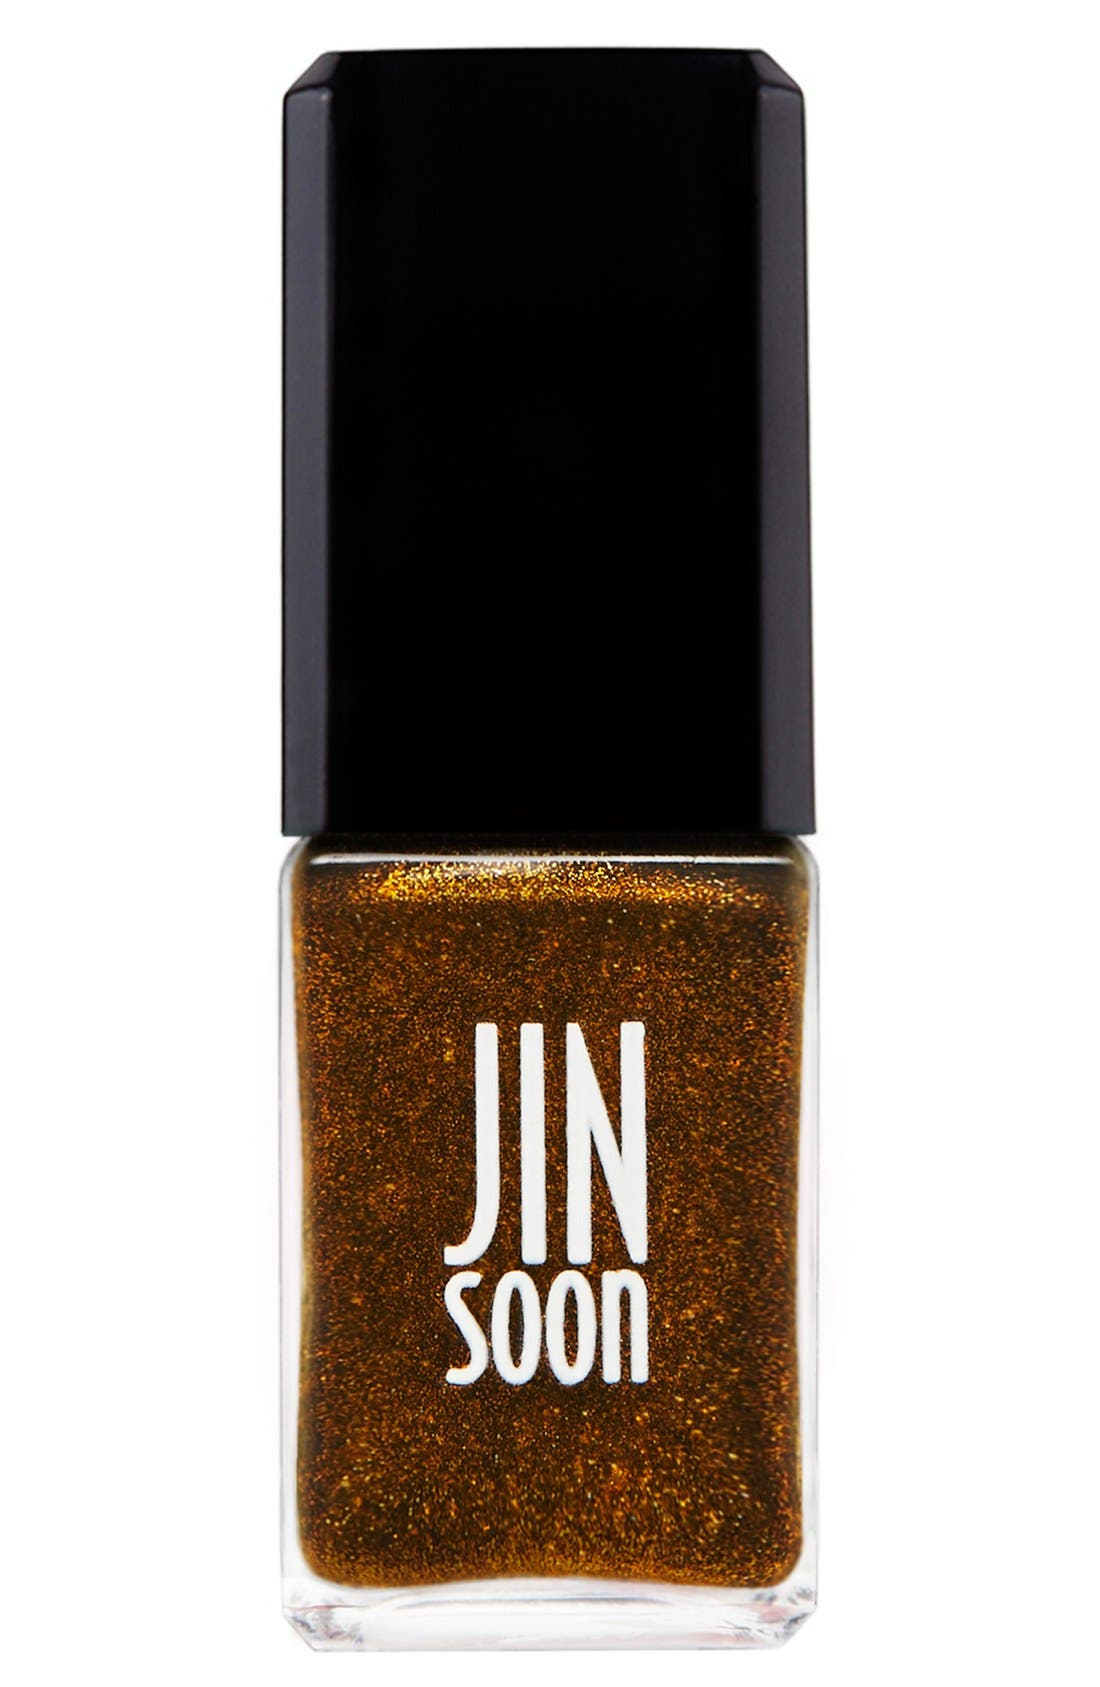 JINsoon 'Verismo' Nail Lacquer